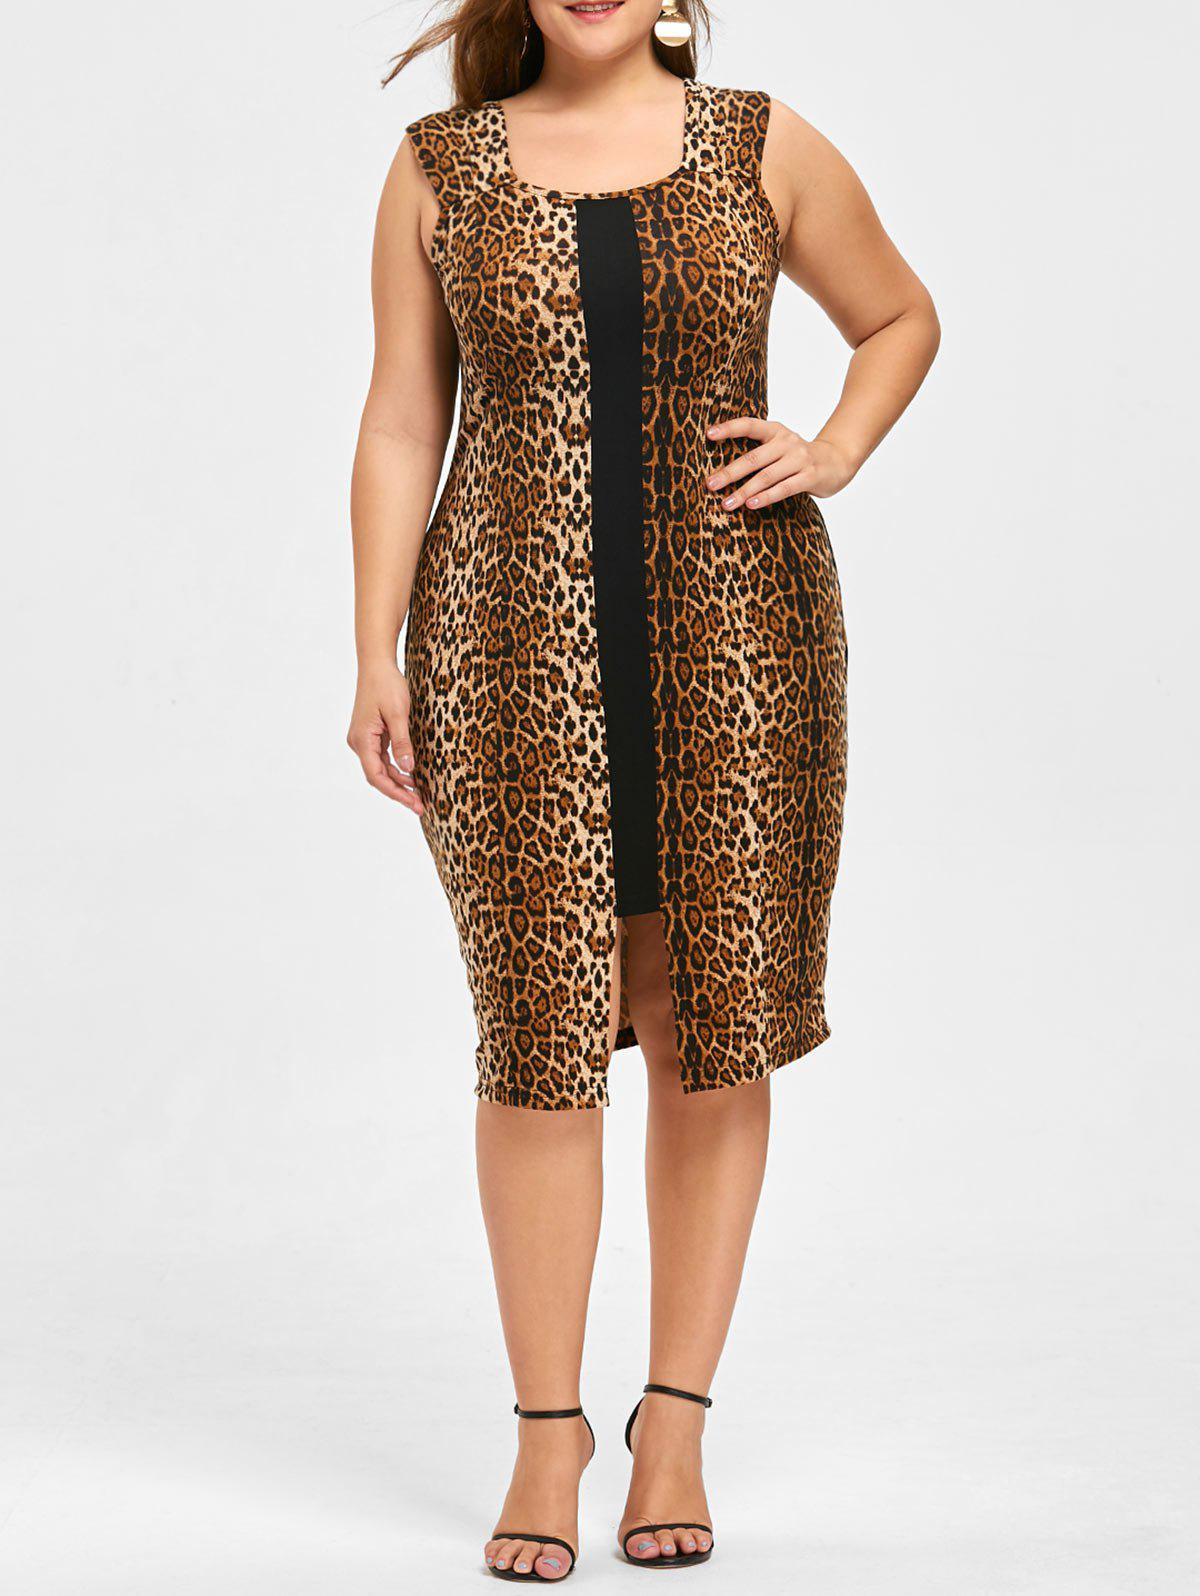 Plus Size Leopard Sleeveless Dress - BLACK LEOPARD PRINT 3XL